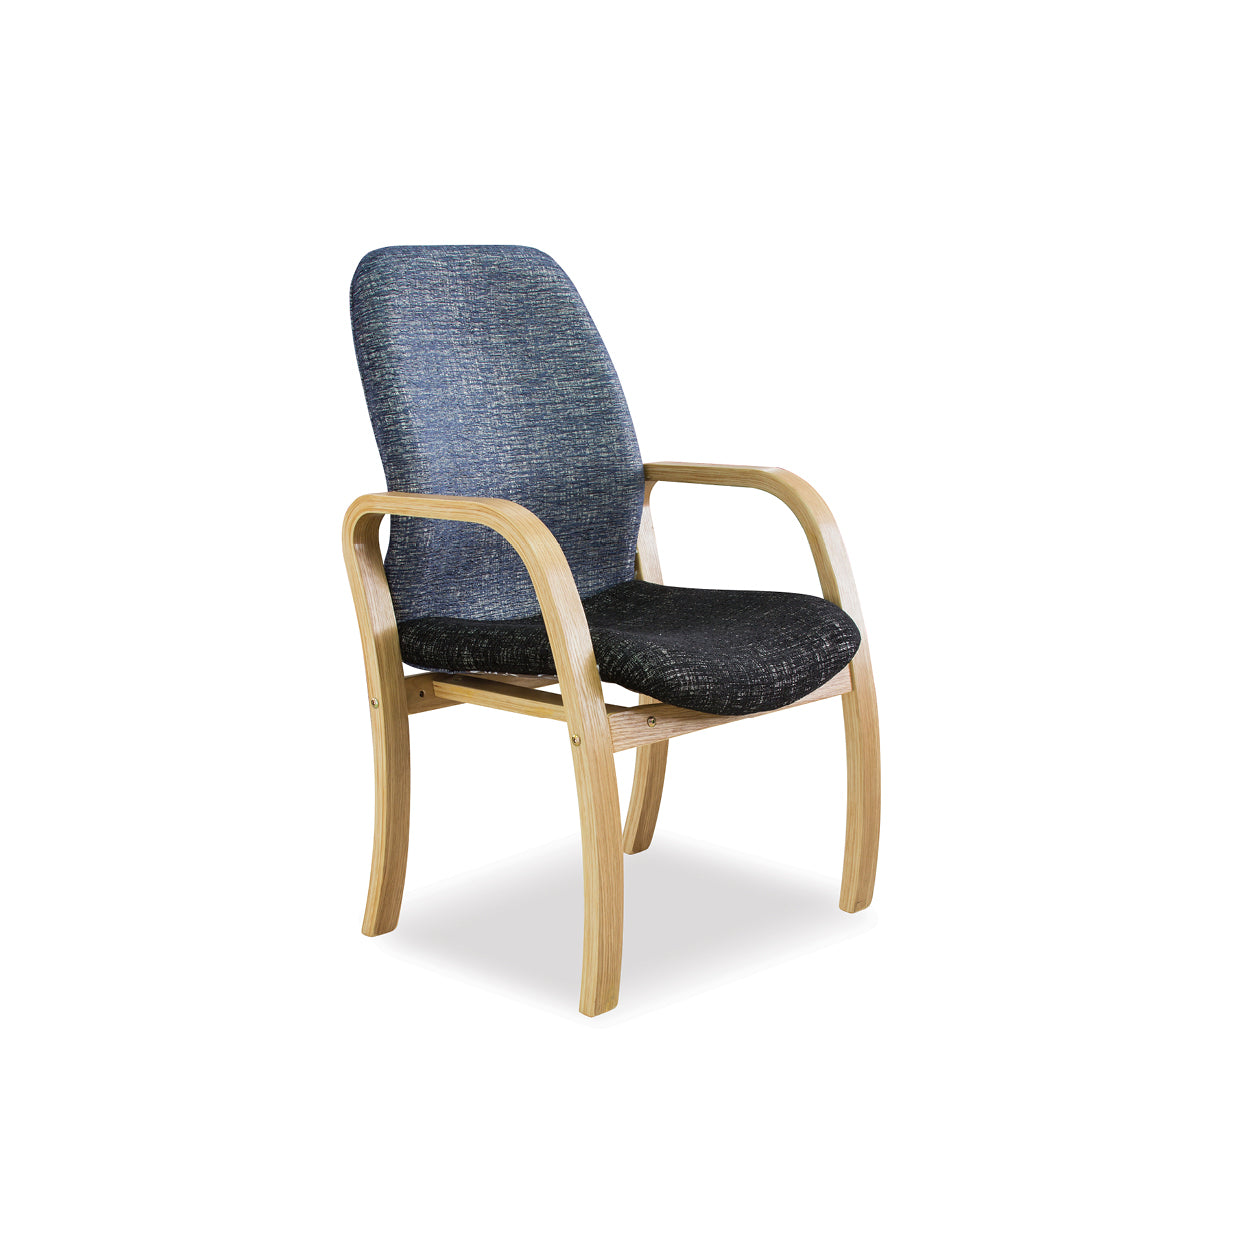 Hedcor Morant Wood Visitors chair